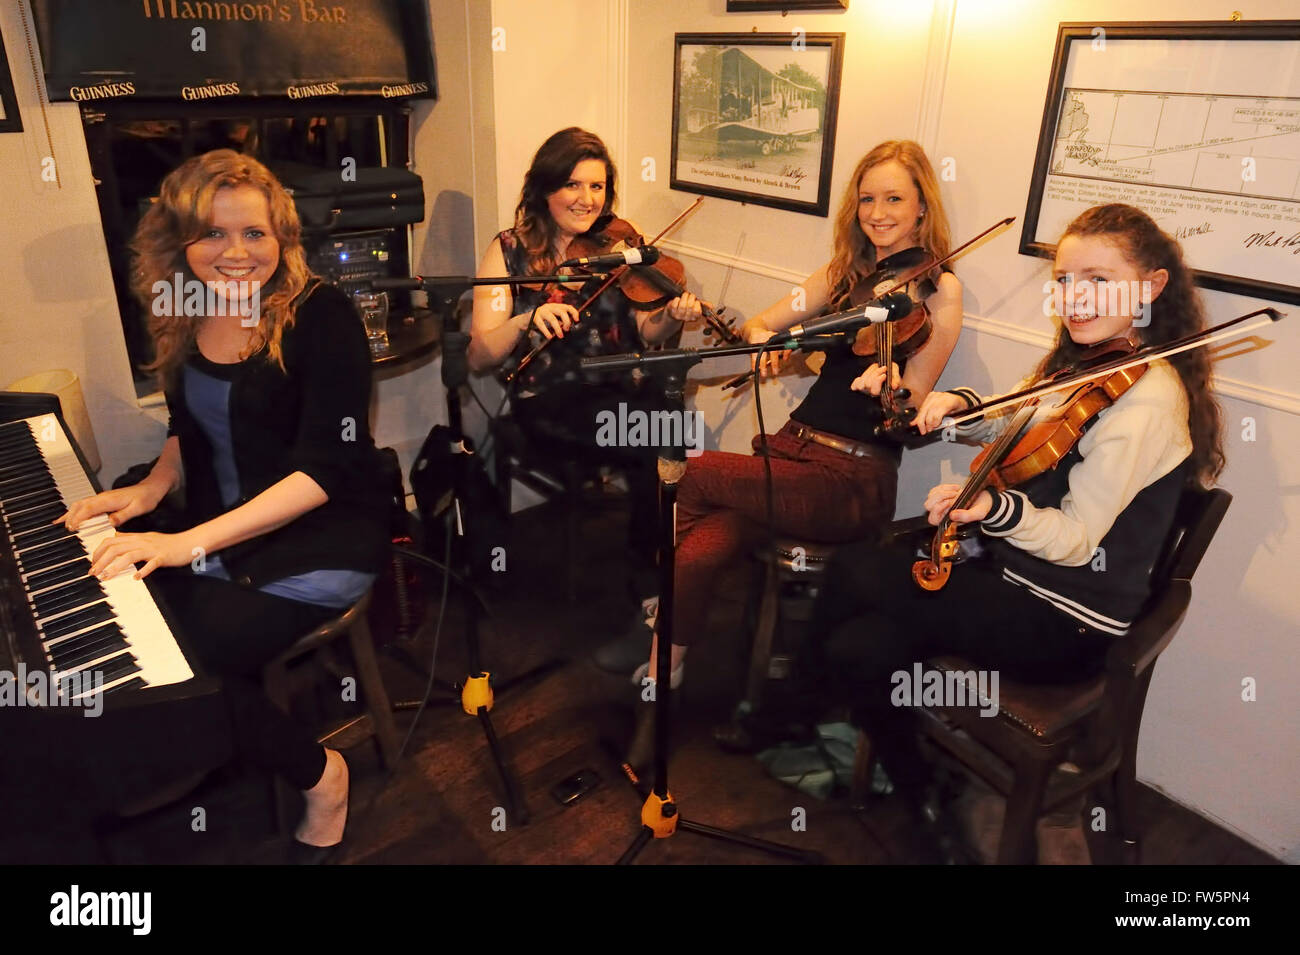 Irish pub music, 4 girls, fiddles and piano